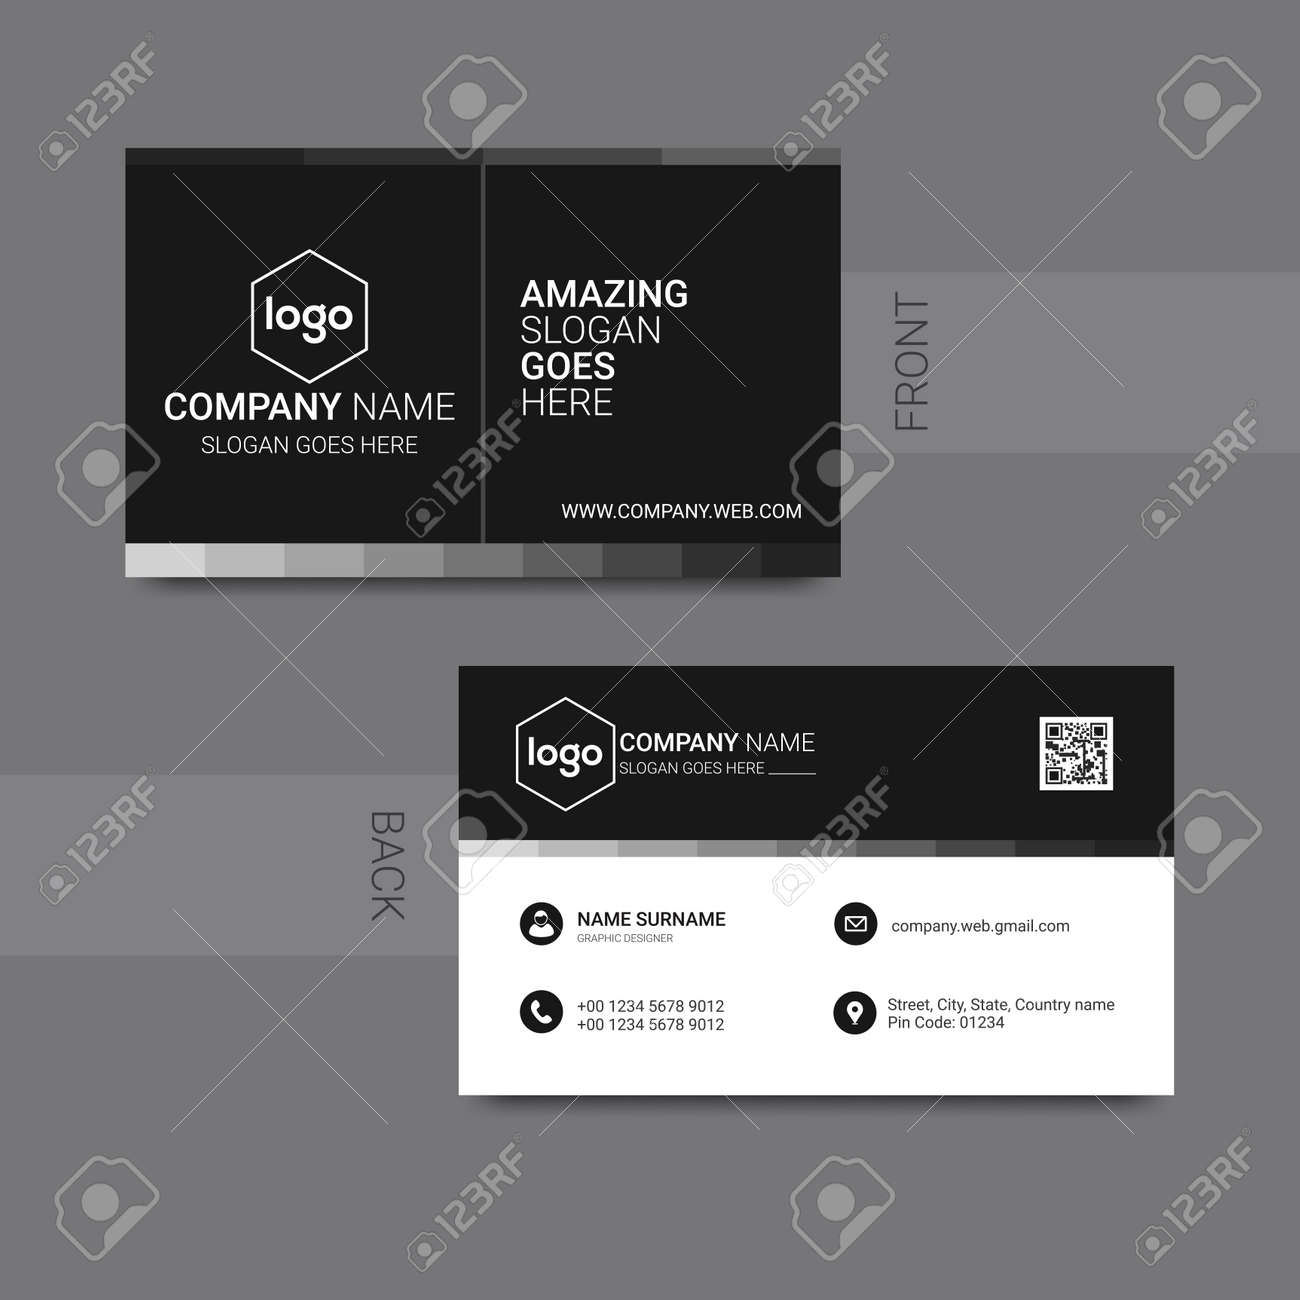 Modern business card template design. With inspiration from the abstract. Contact card for company. - 167530730